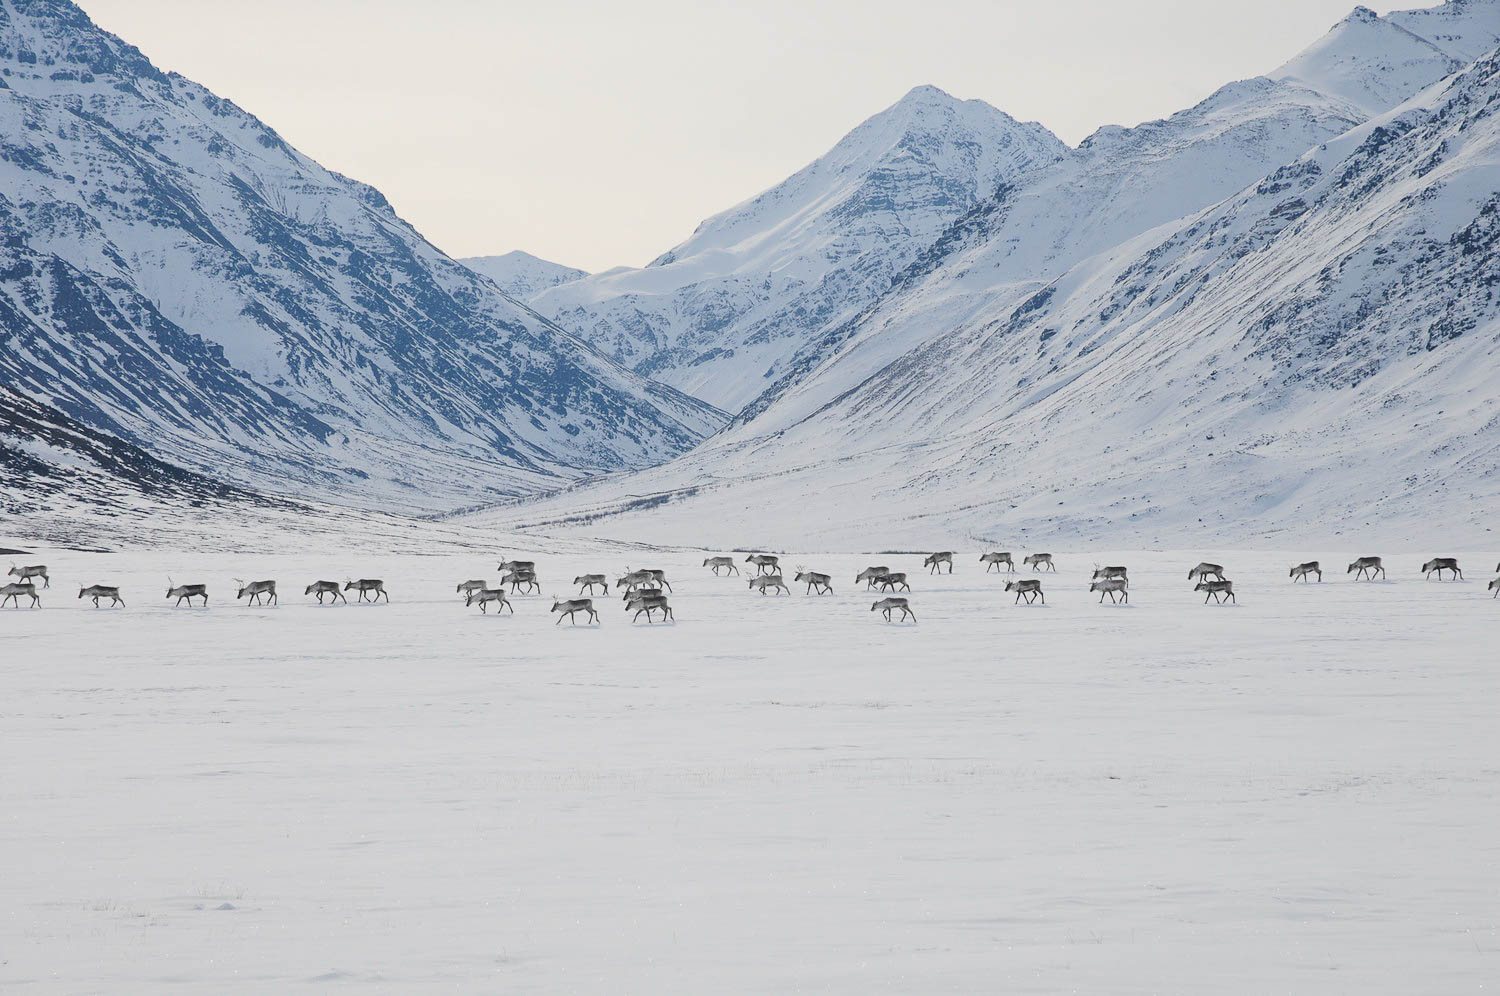 Wildlife group sounds alarm over Canada's declining caribou herds